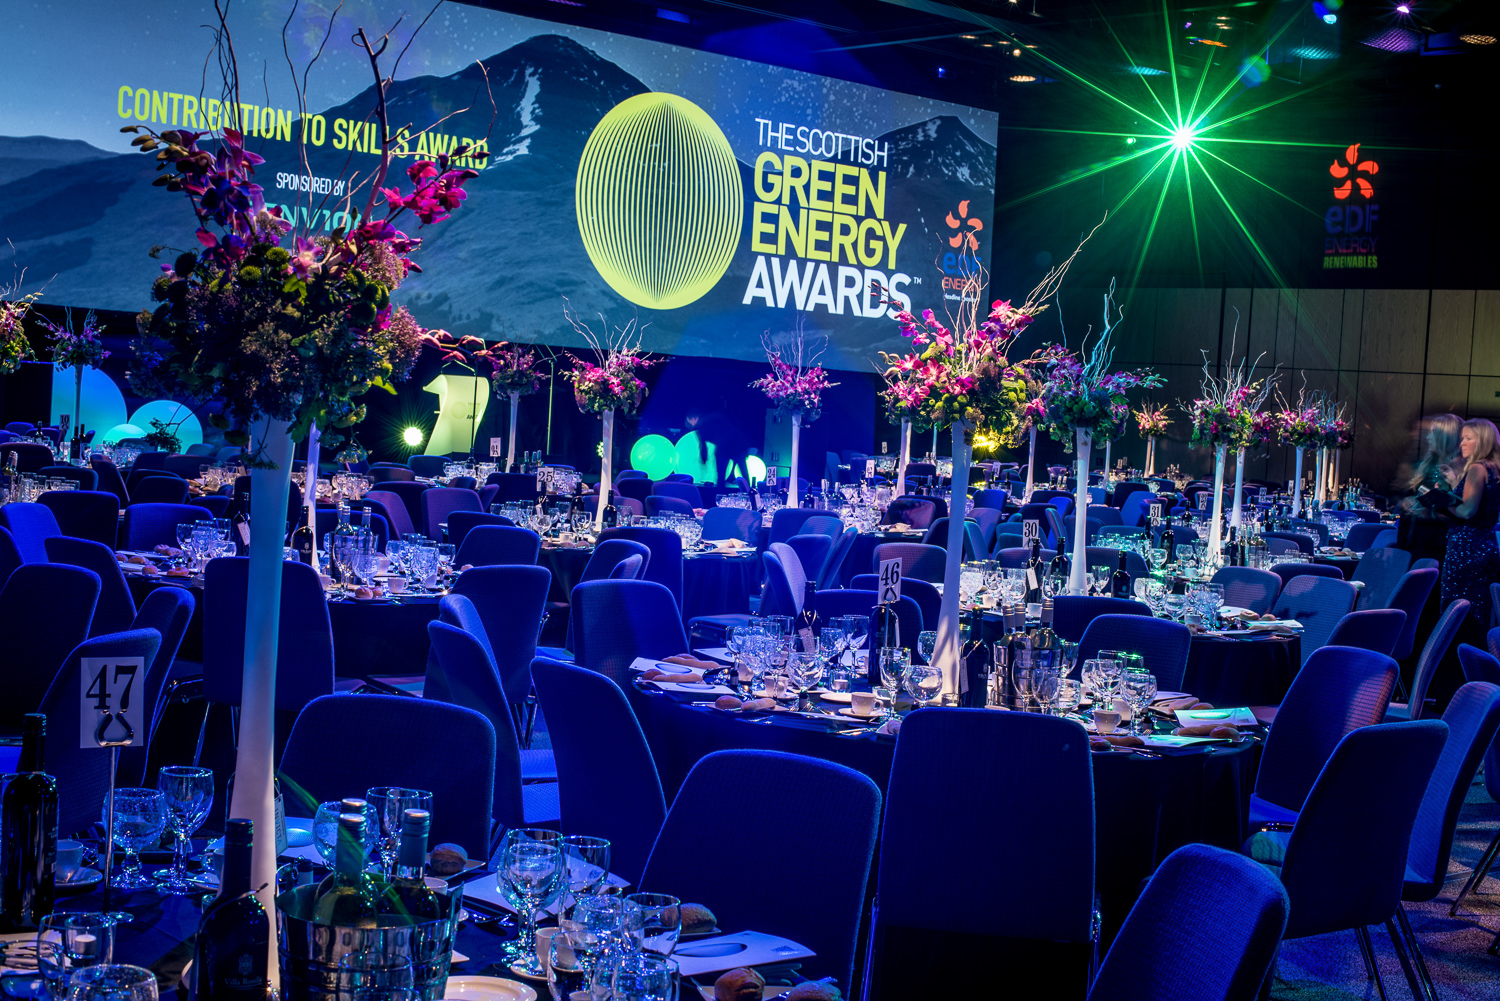 green_energy_awards_2014_012_low_res.jpg